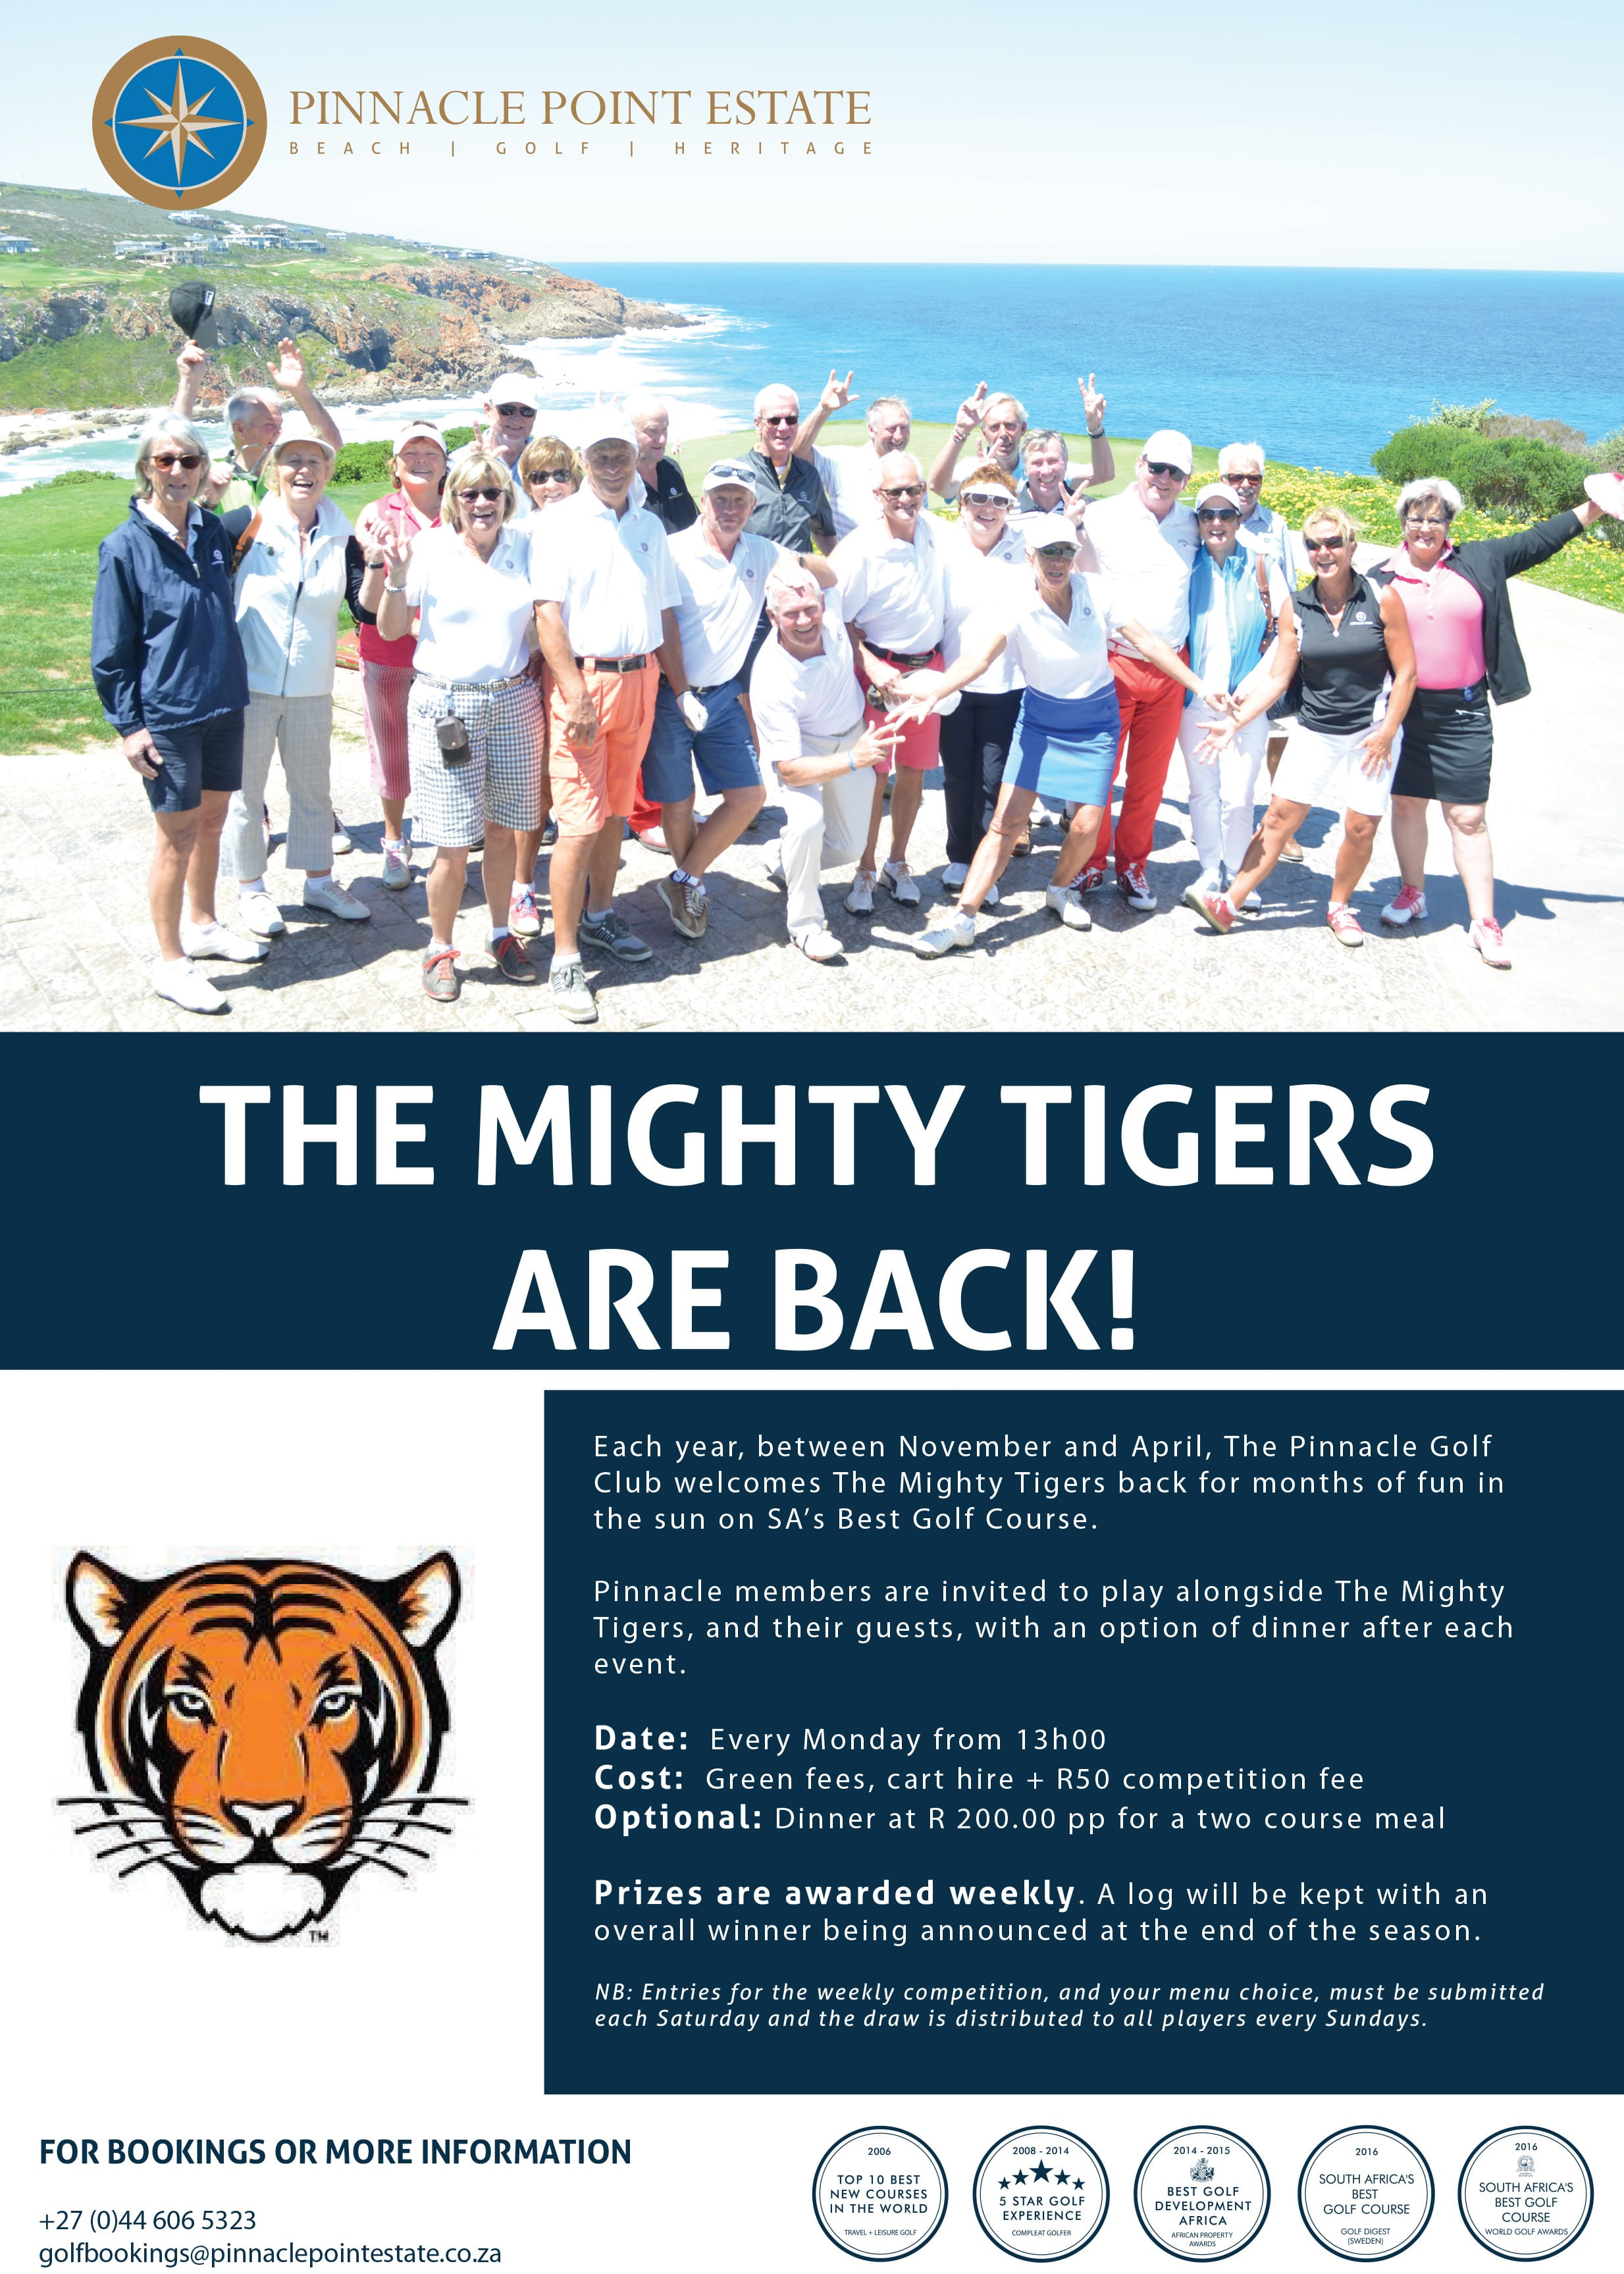 The Mighty Tigers | Pinnacle Point Estate